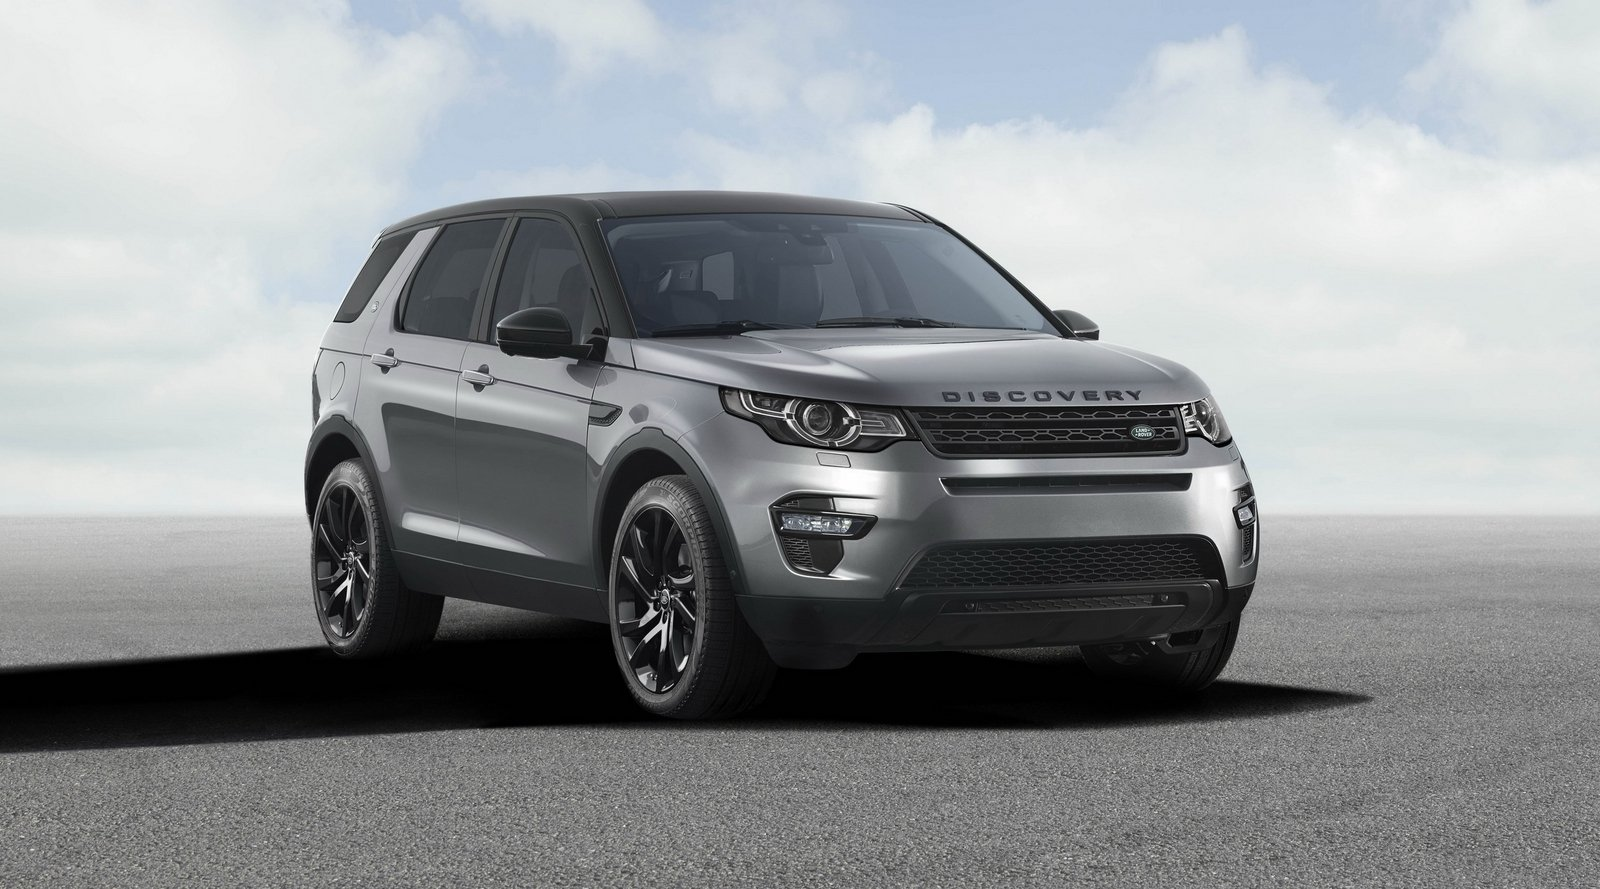 2016 land rover discovery sport picture 566855 car review top speed. Black Bedroom Furniture Sets. Home Design Ideas